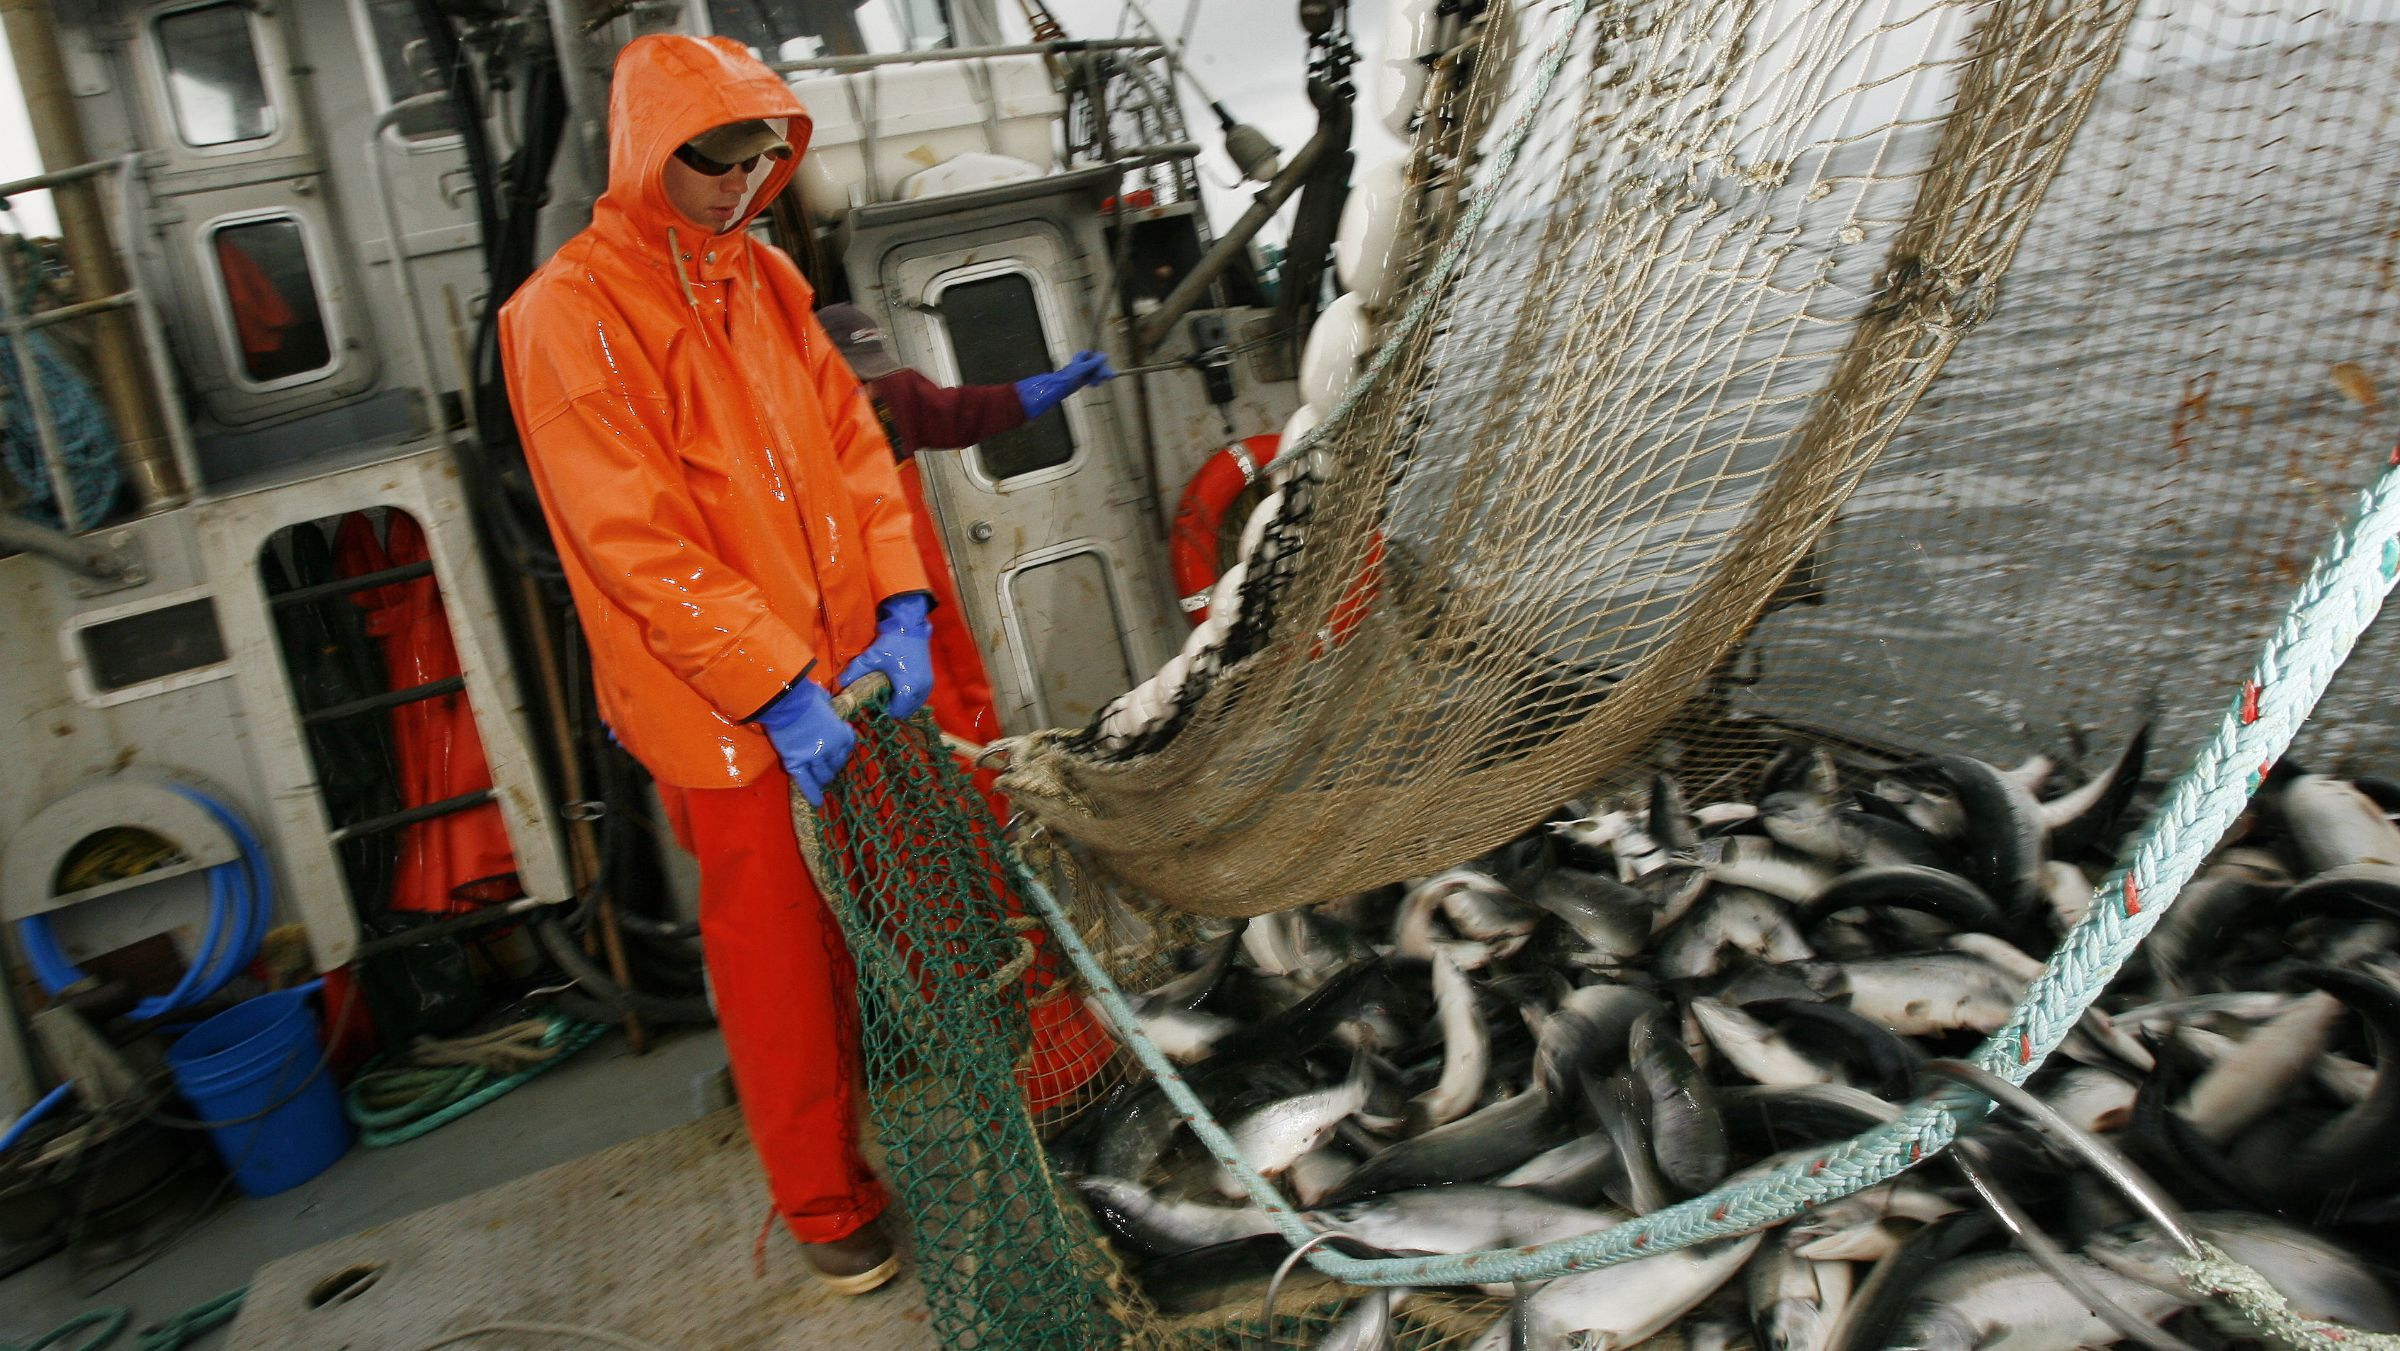 sockeye salmon fishery sustainable farmed export processing Deck hand Mac Cox works to haul a load of fish into the fish hold of the commercial salmon seining vessel F/V Renaissance in the waters off the island of Kodiak, Alaska August 3, 2008. REUTERS/Lucas Jackson